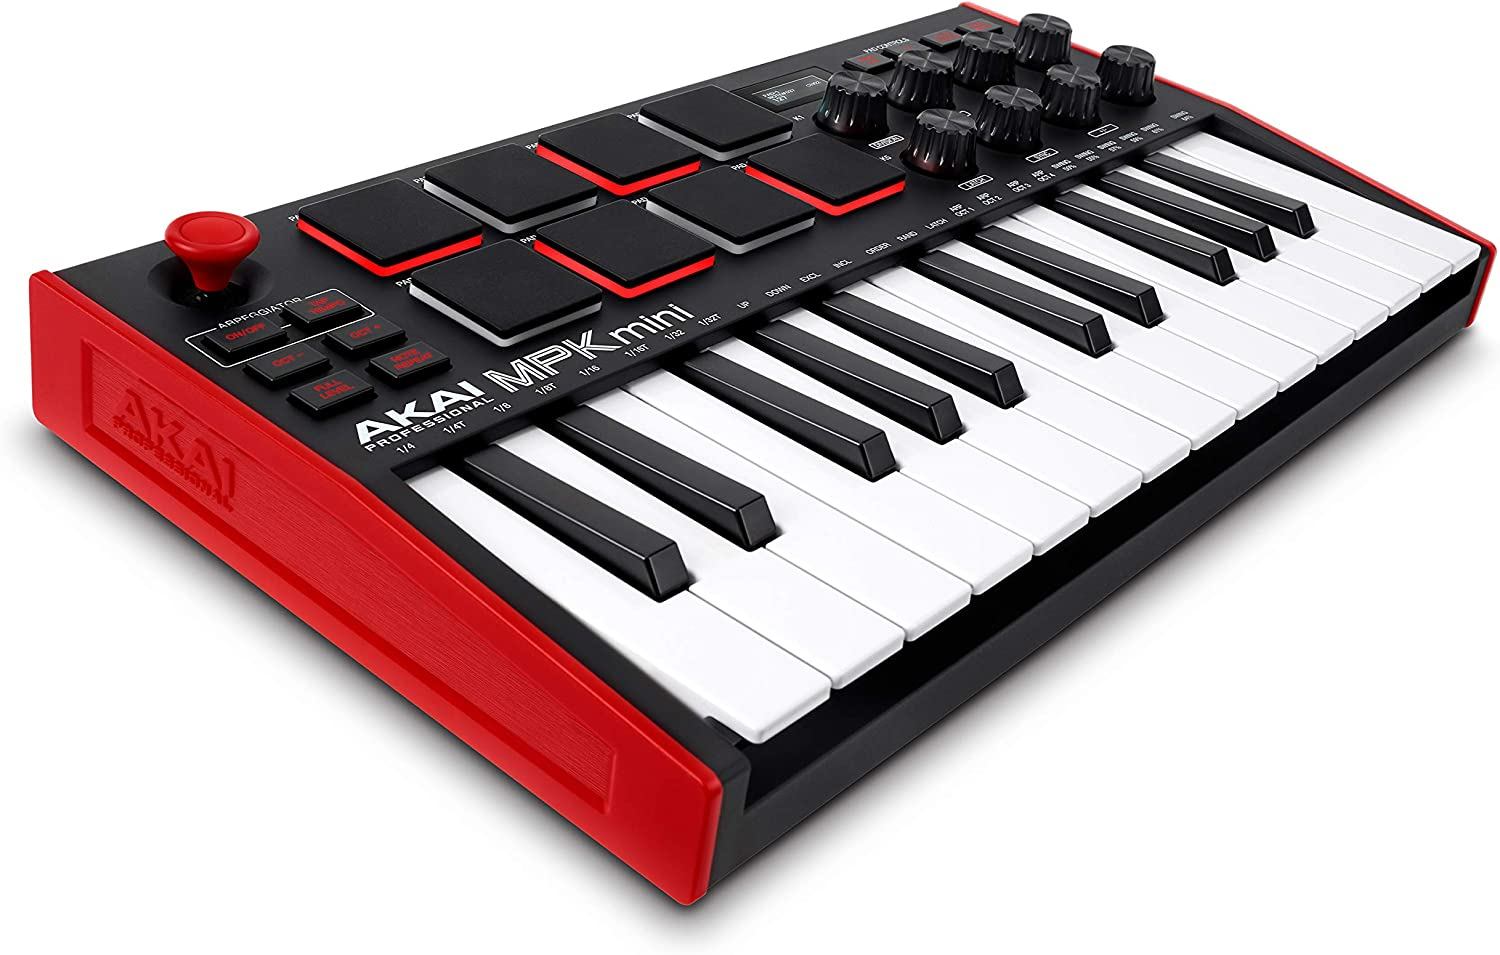 AKAI Professional MPK Mini MK3 – 25 Key USB MIDI Keyboard Controller with 8  Backlit Drum Pads, 8 Knobs and Music Production Software Included:  Amazon.co.uk: Musical Instruments